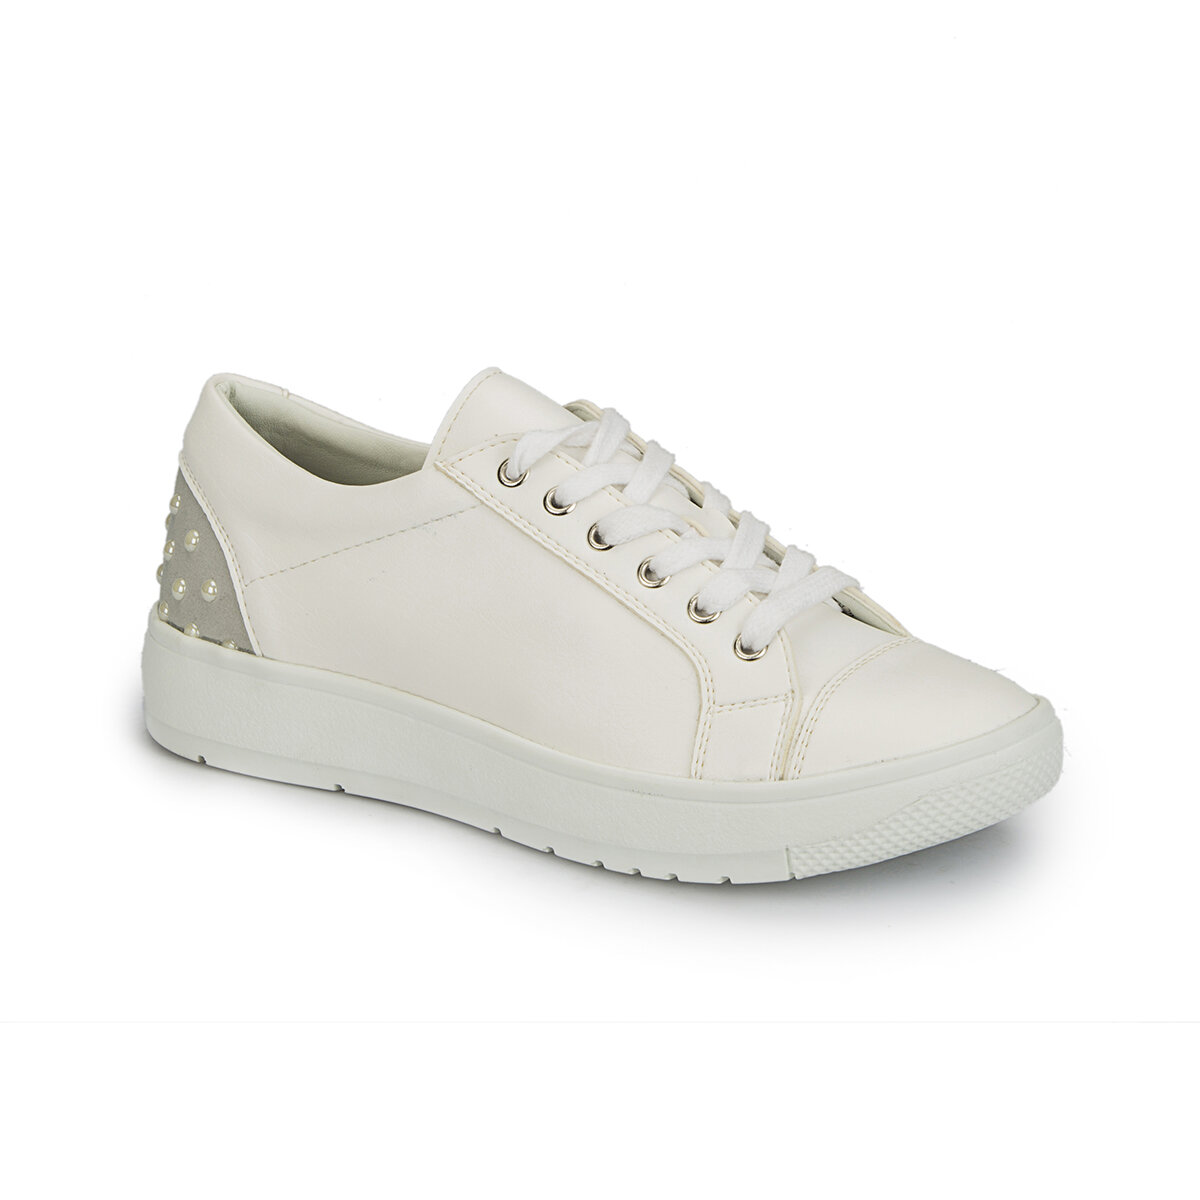 FLO 81.311411.Z White Women 'S Sneaker Shoes Polaris